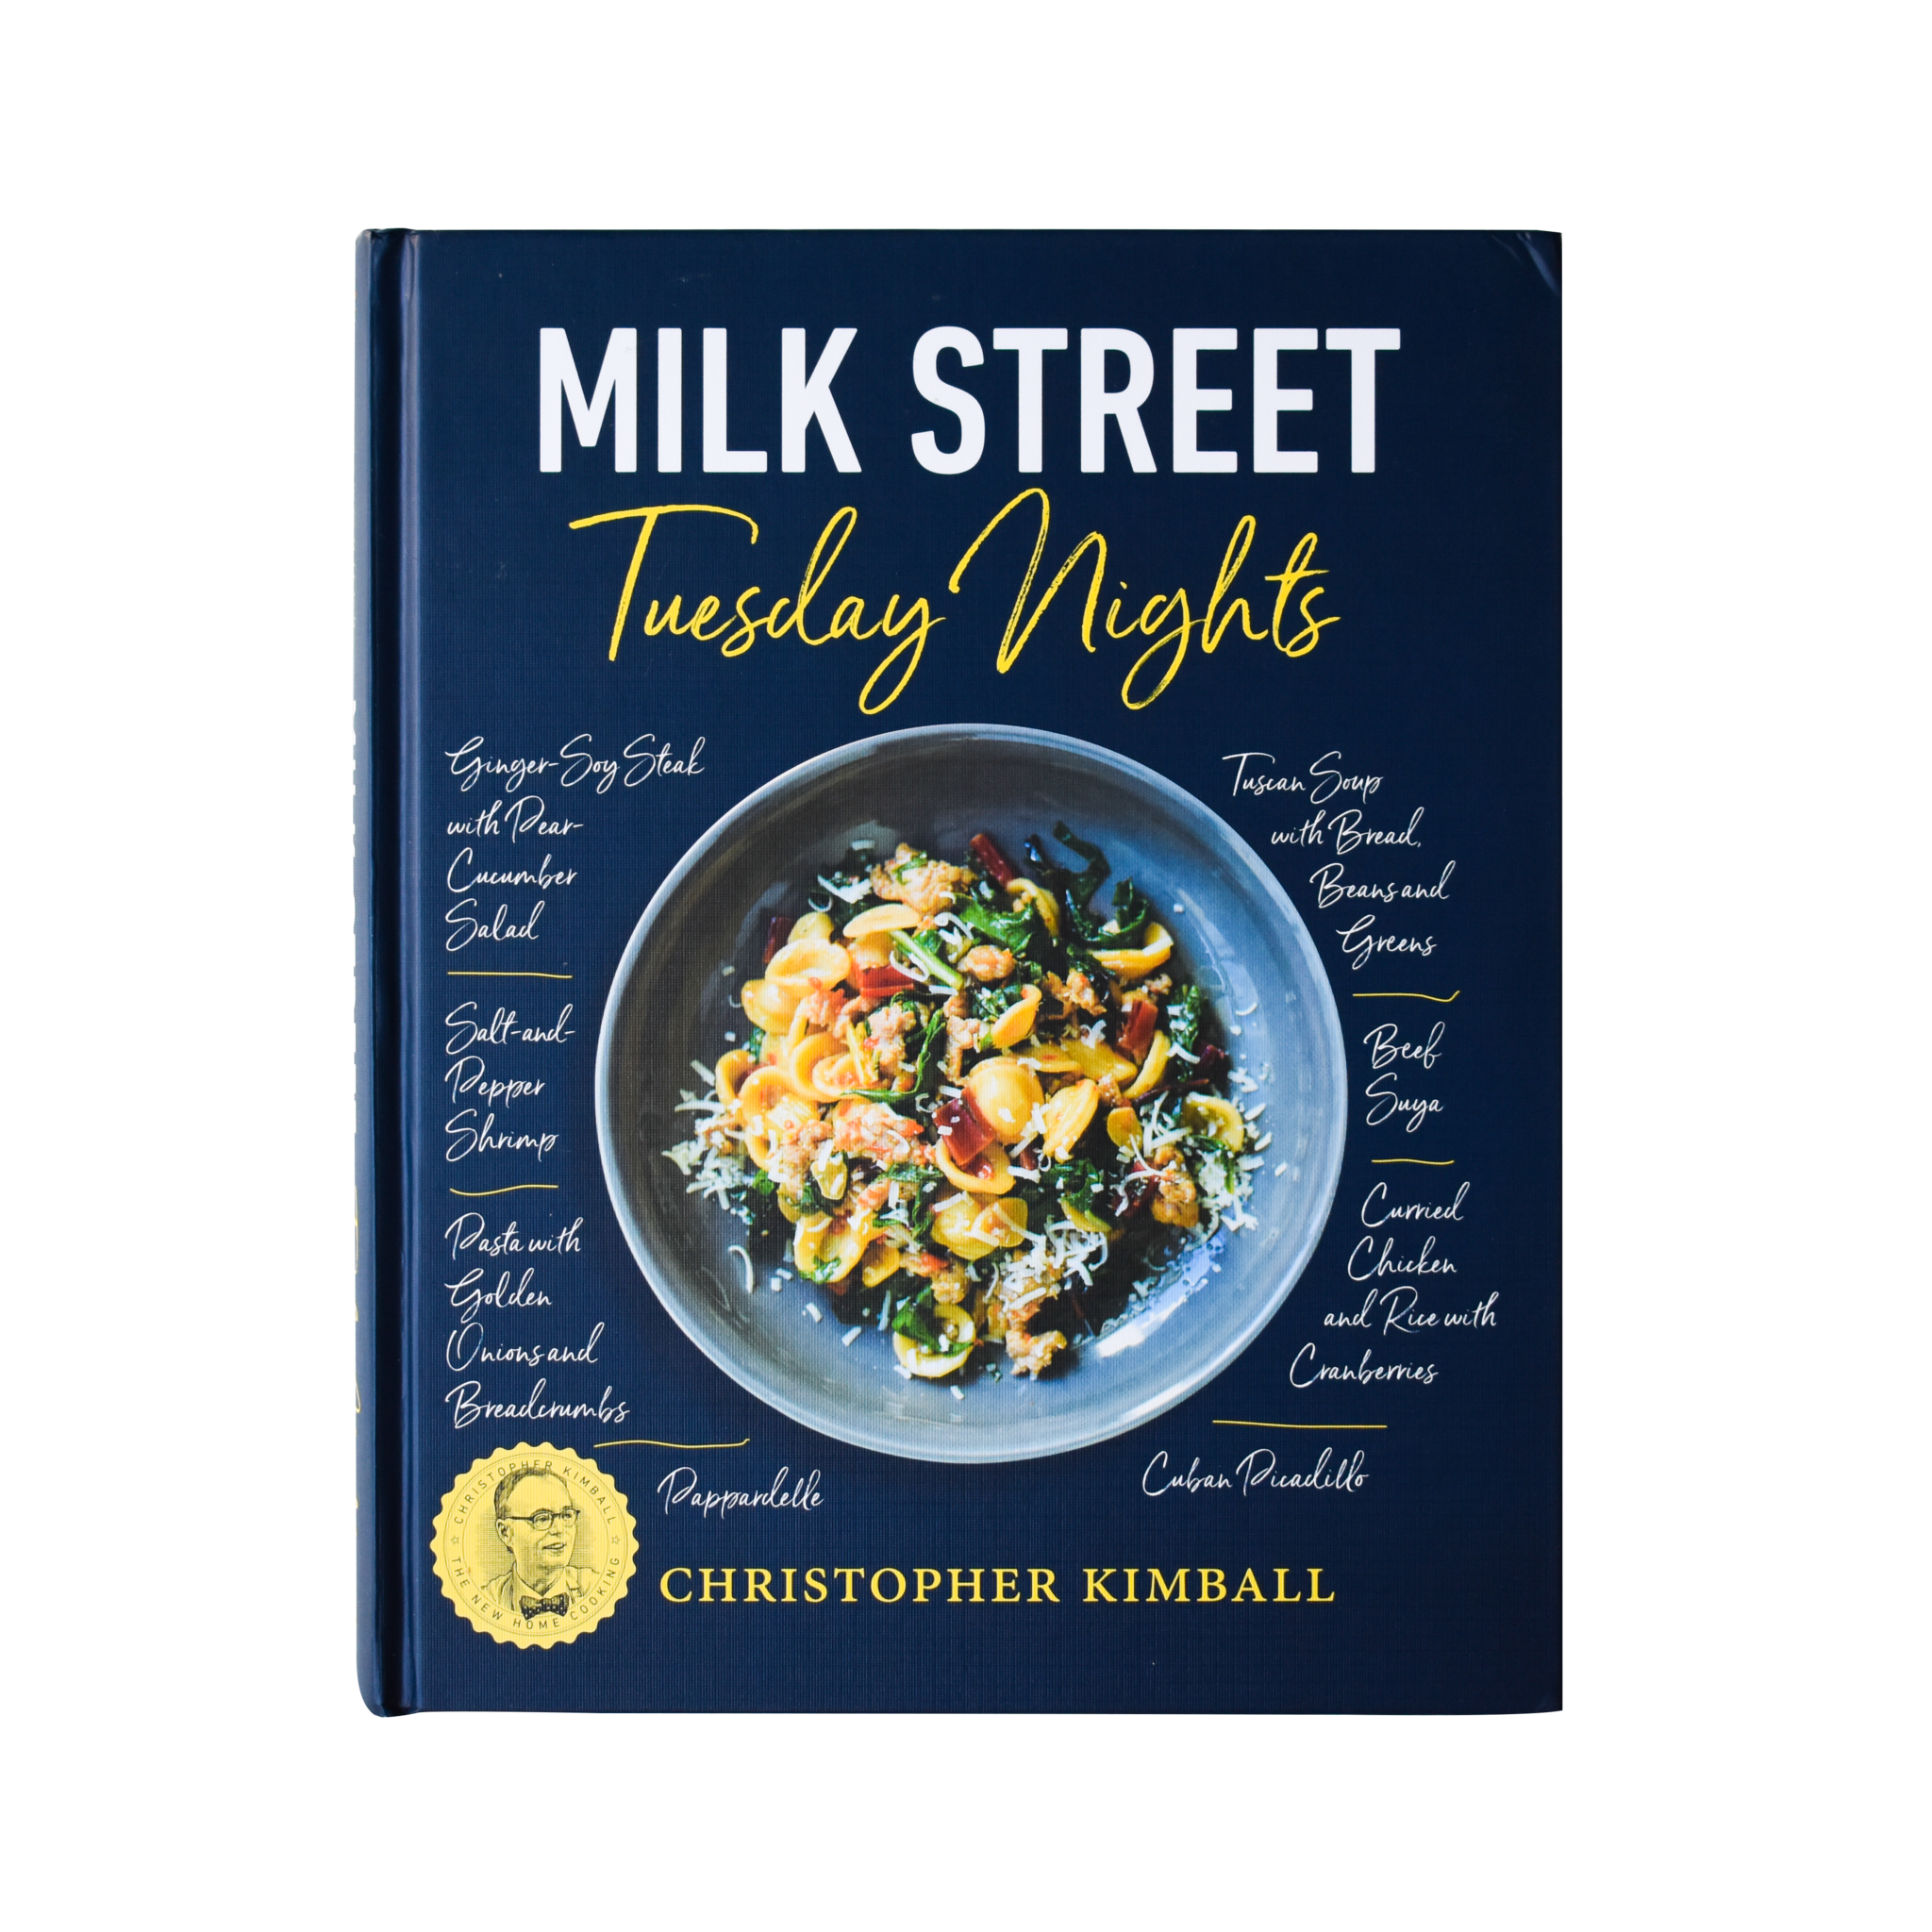 milk-street-tuesday-nights-signed-edition-milk-street-6586035994681_2048x.png